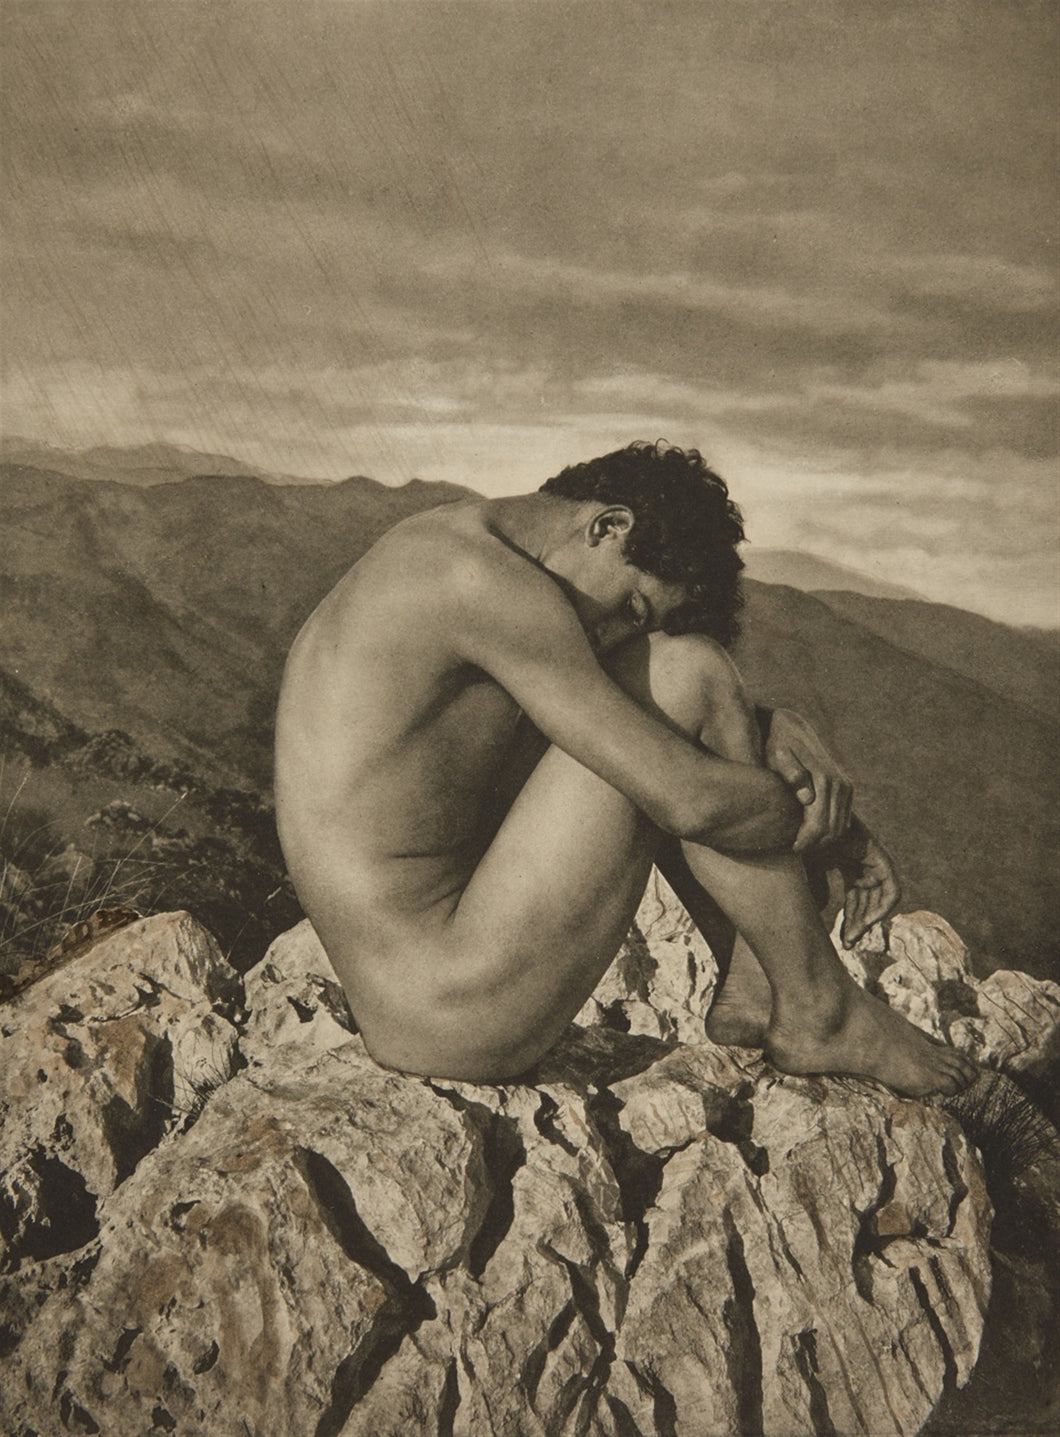 Boy on Rock by Wilhelm von Gloeden, histoic photo, 16x12